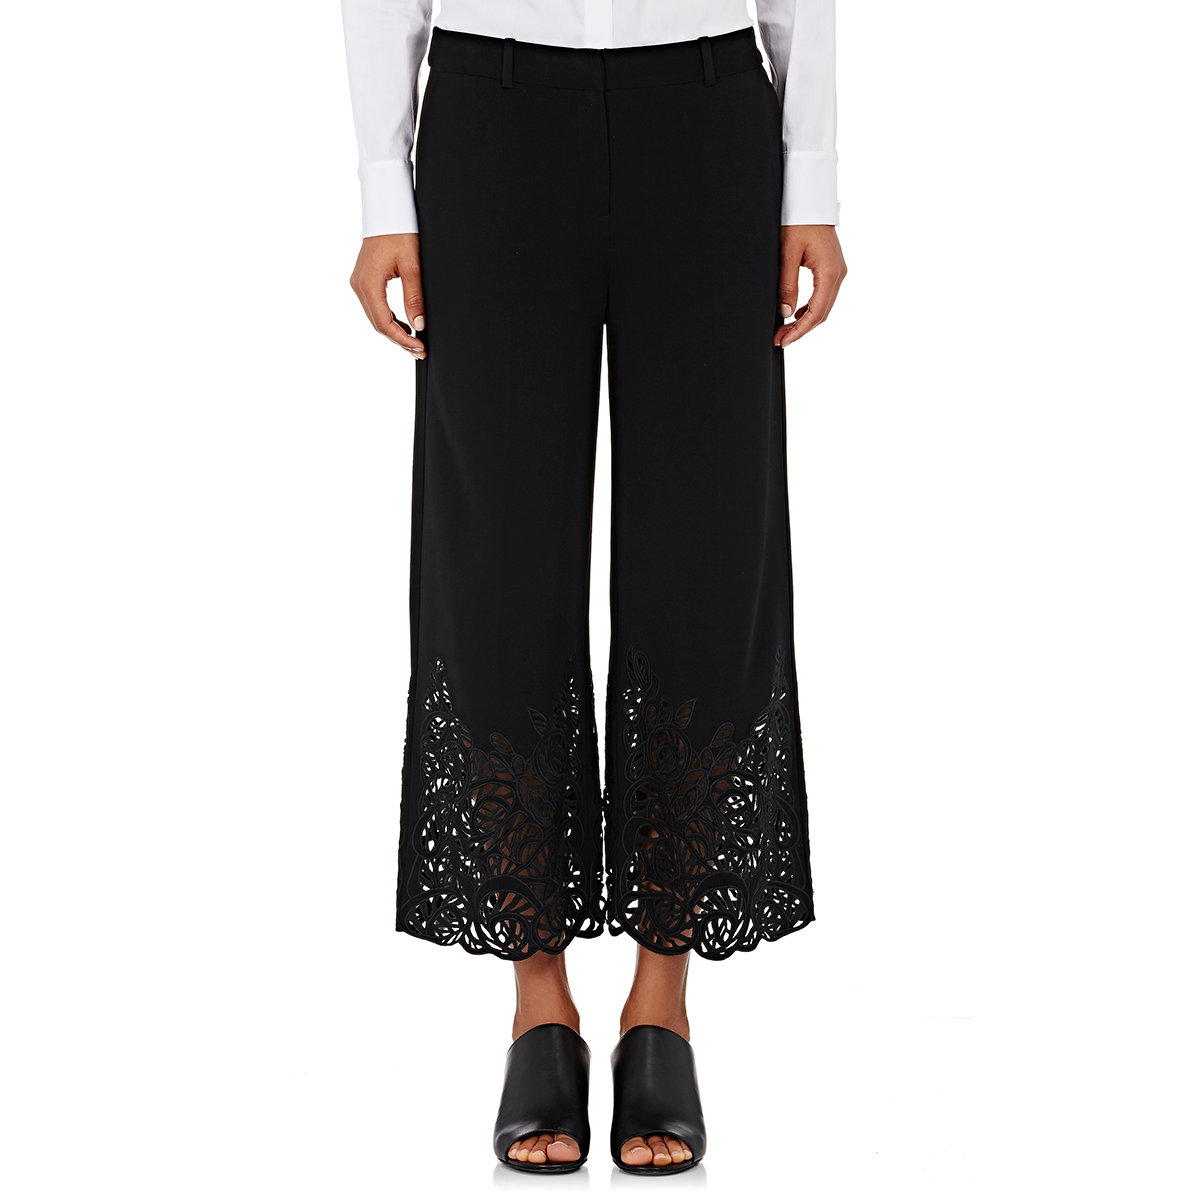 R/r studio Guipure Lace Gaucho Pants in Black | Lyst